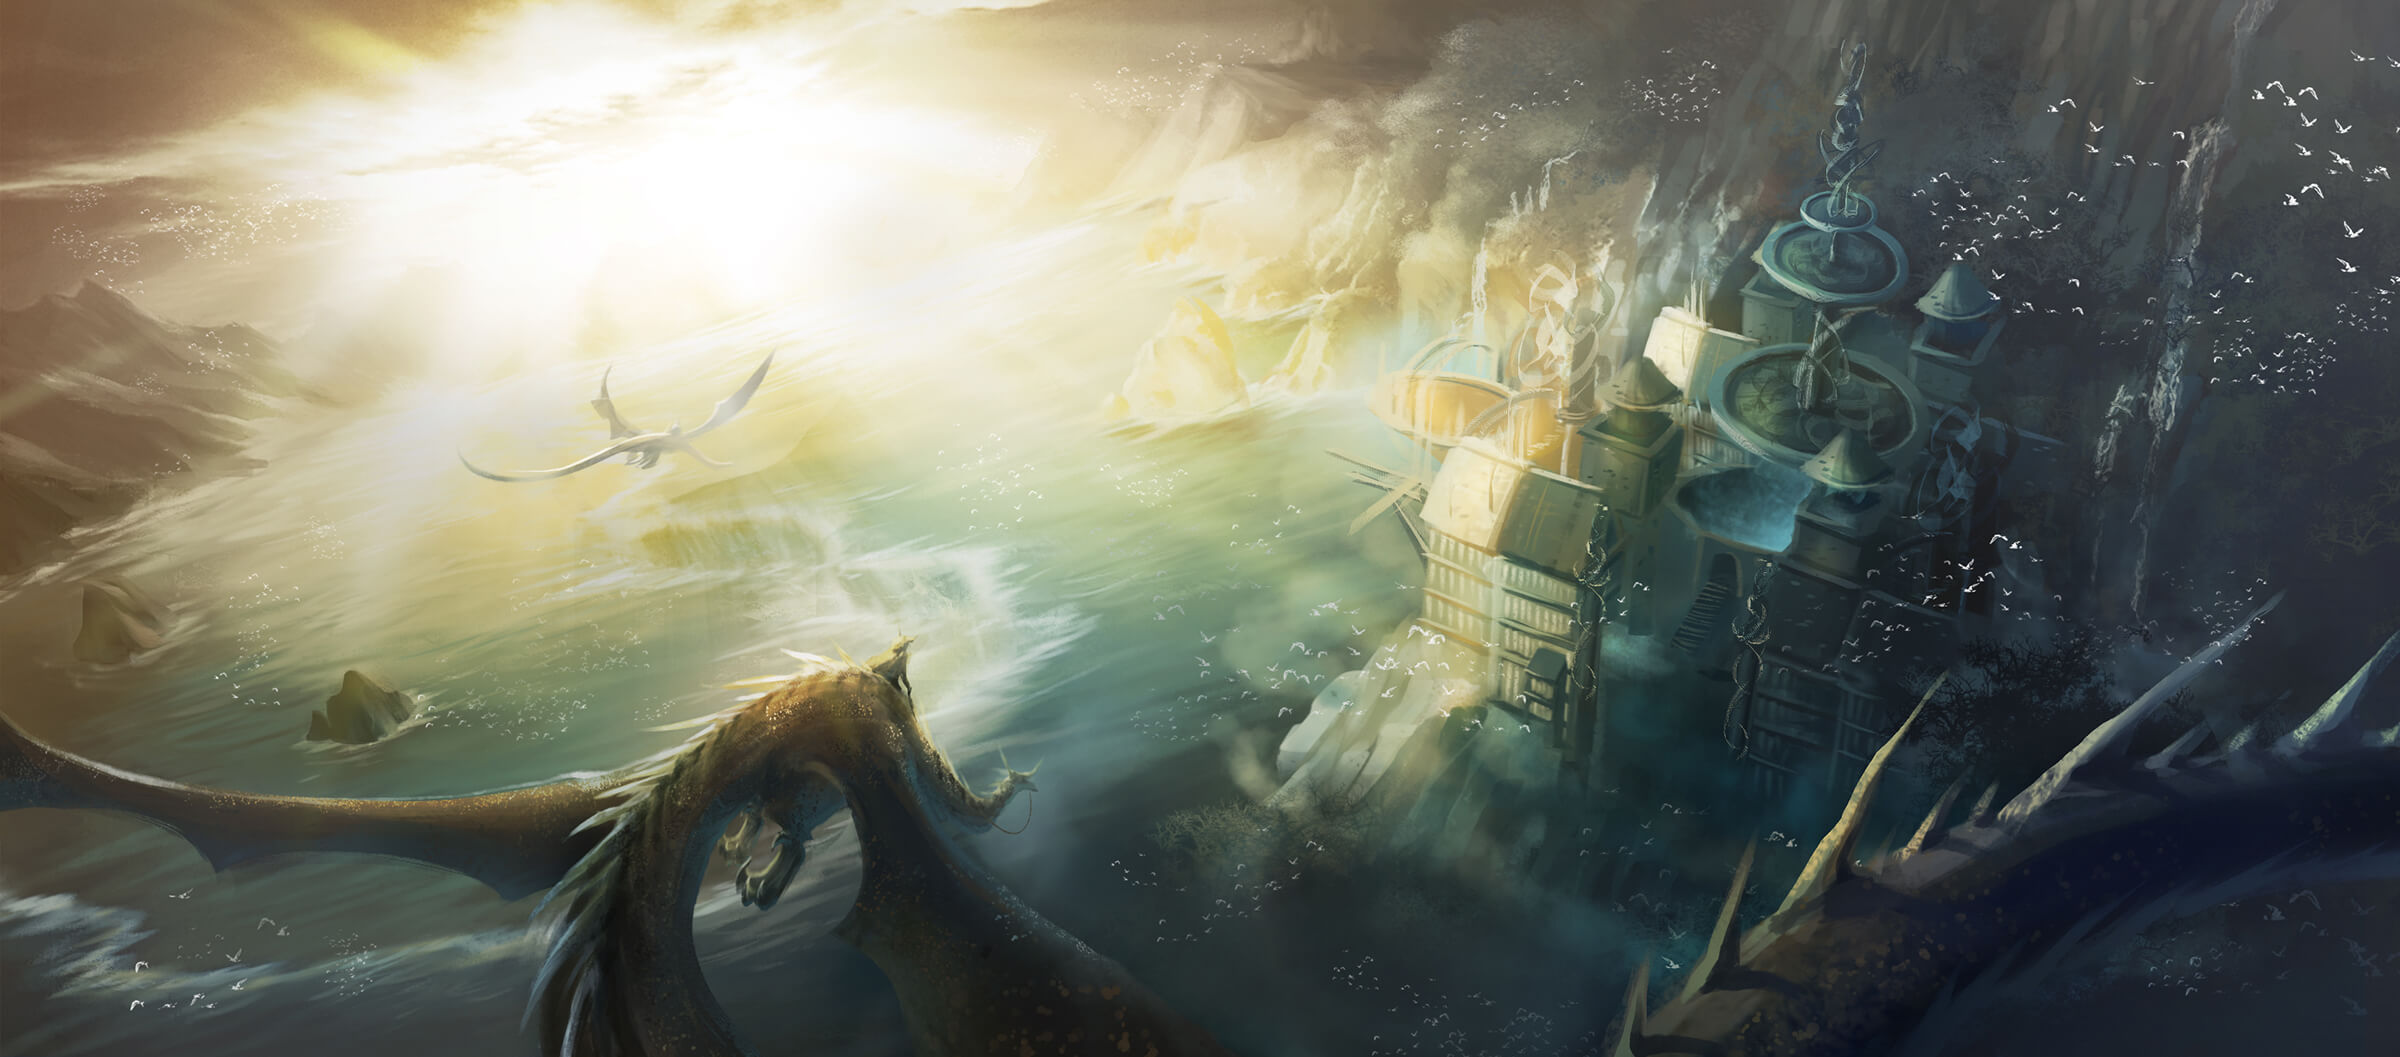 Dragons and their riders fly above a mystical castle on a rocky shore. A diffuse sun lights the scene from a distance.